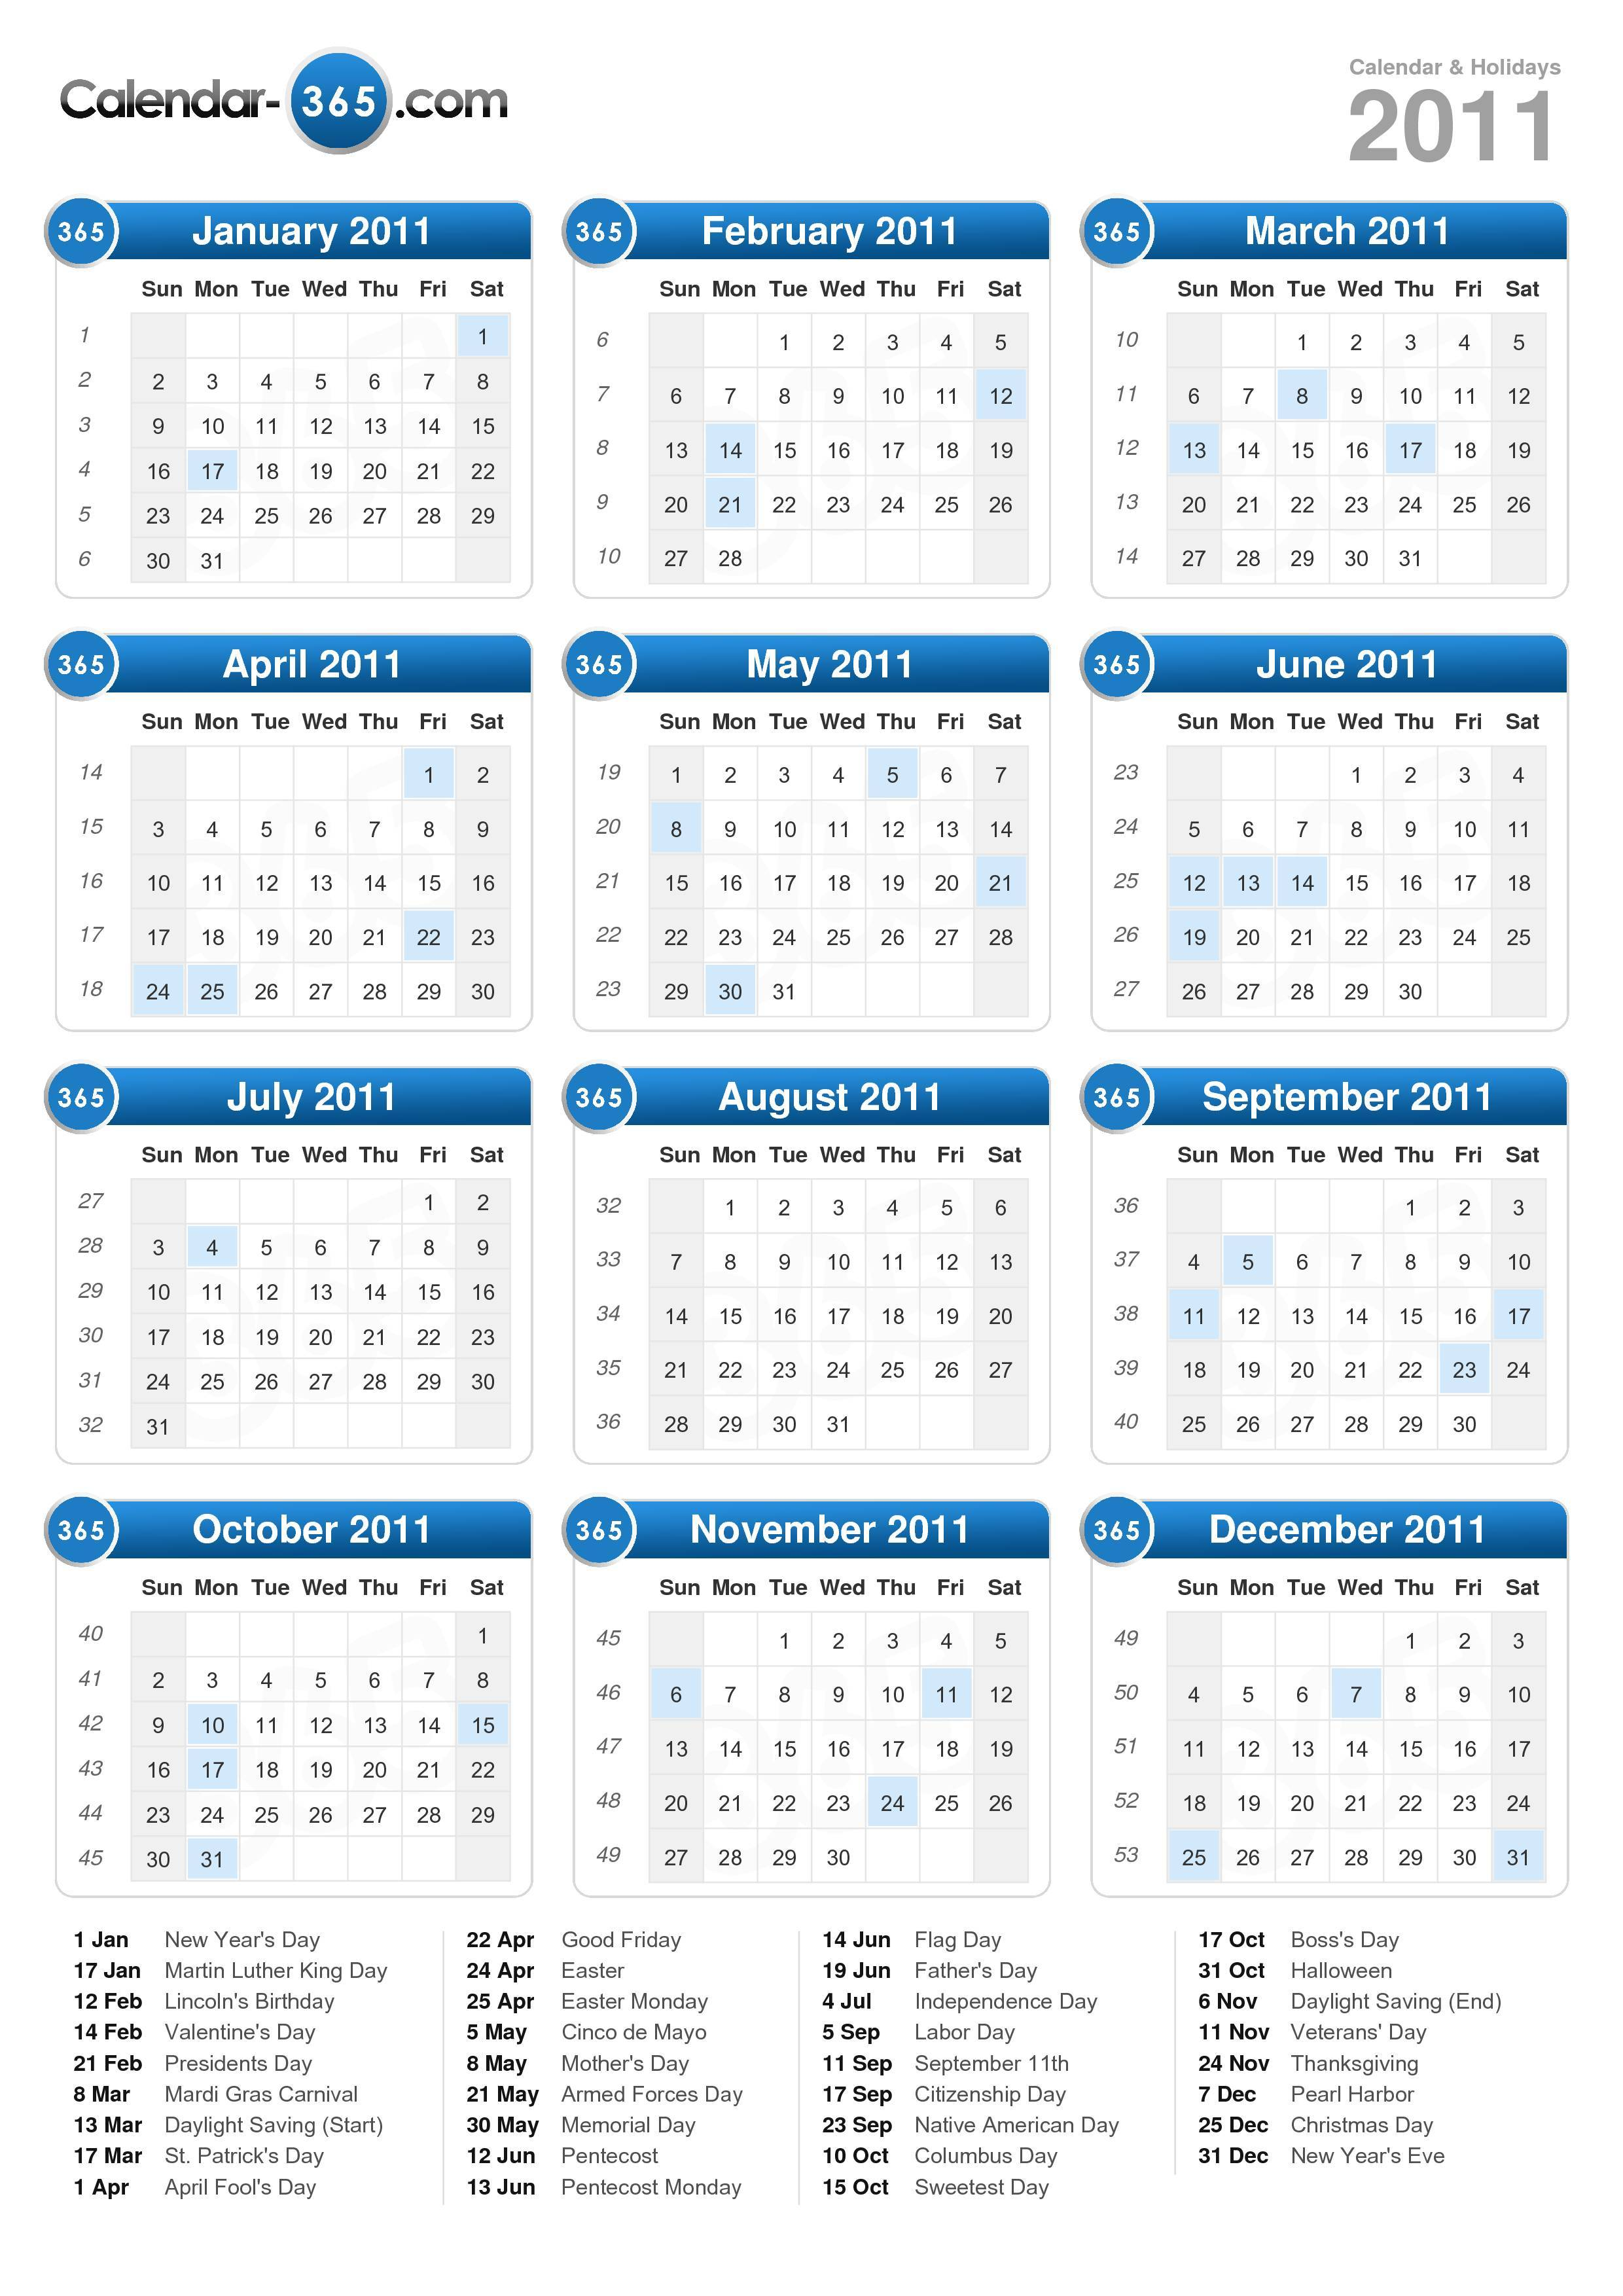 Download the 2011 Calendar with holidays . (Portrait format - 1 Page)